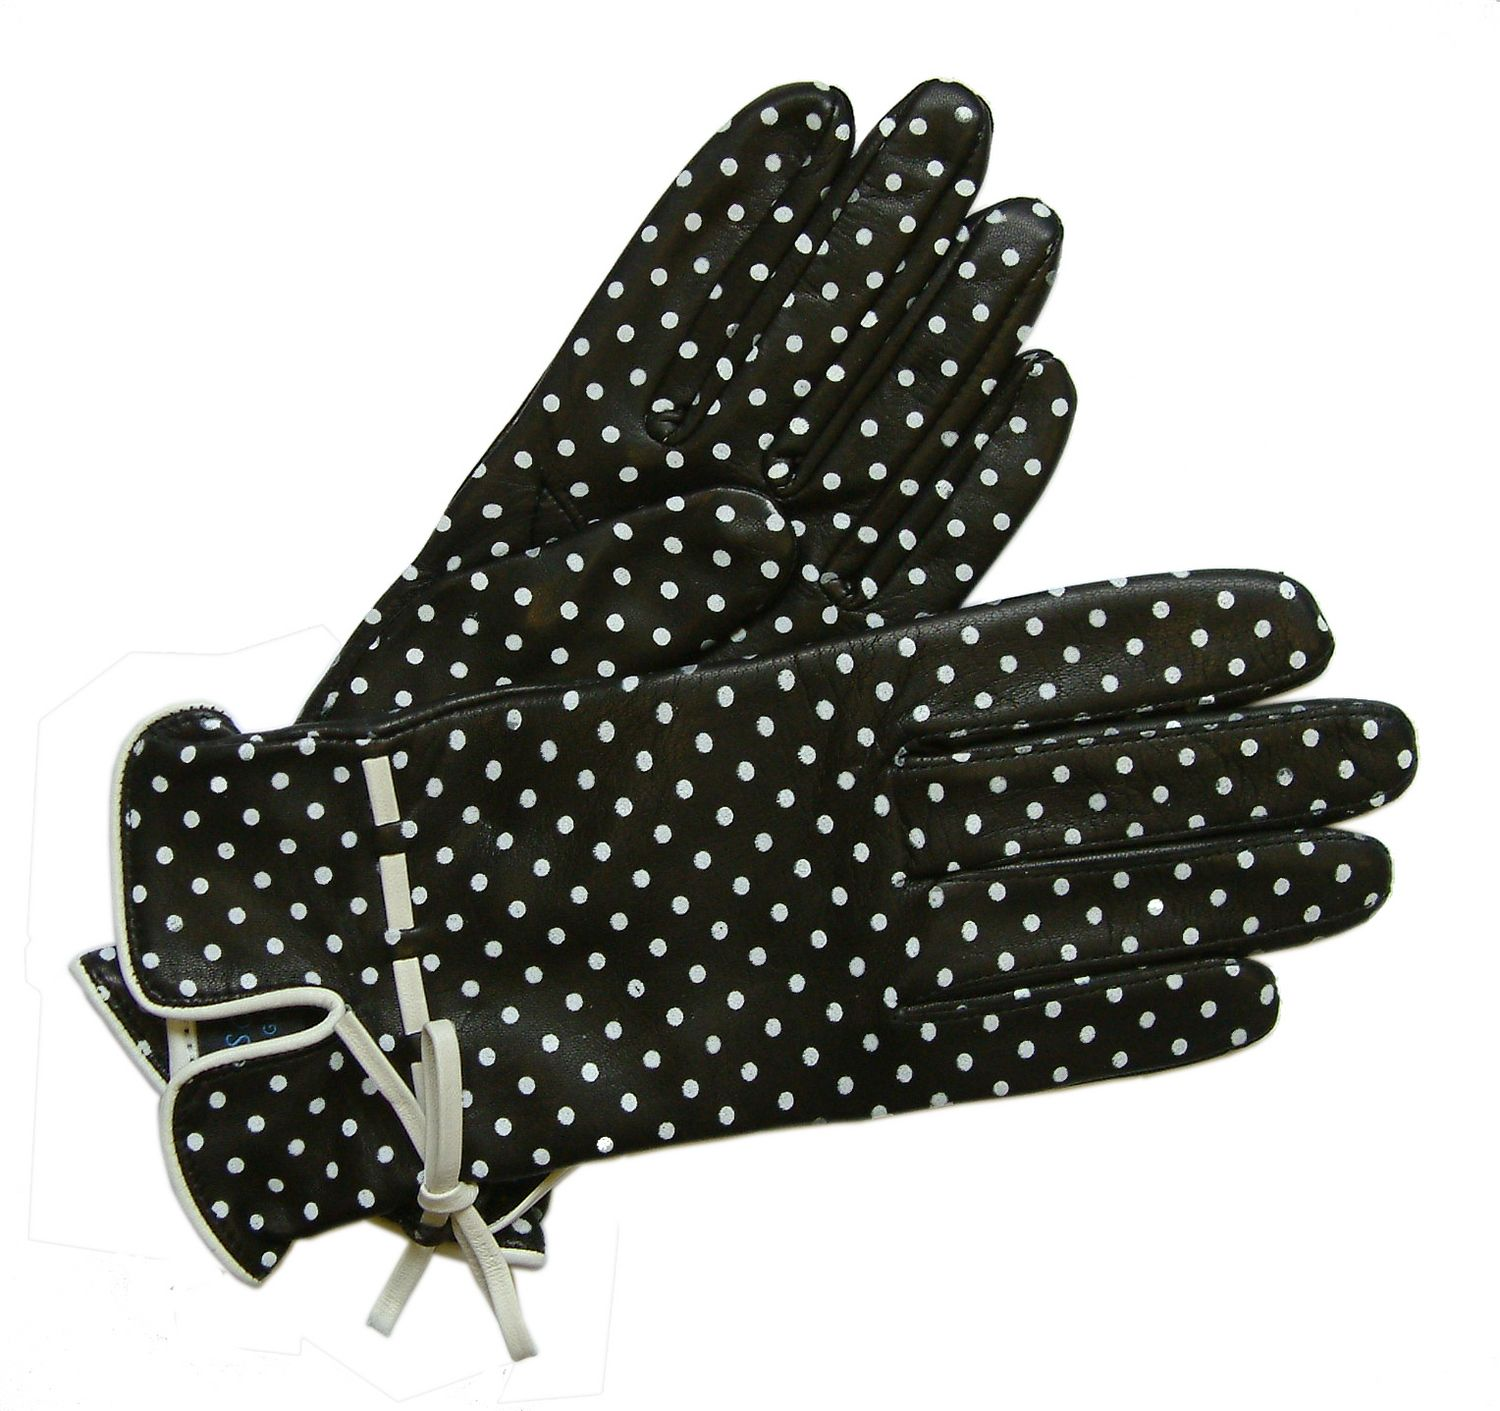 Blue leather gloves ladies uk - Womens Silk Lined Polka Dot Black Leather Glove From Southcombe Gloves